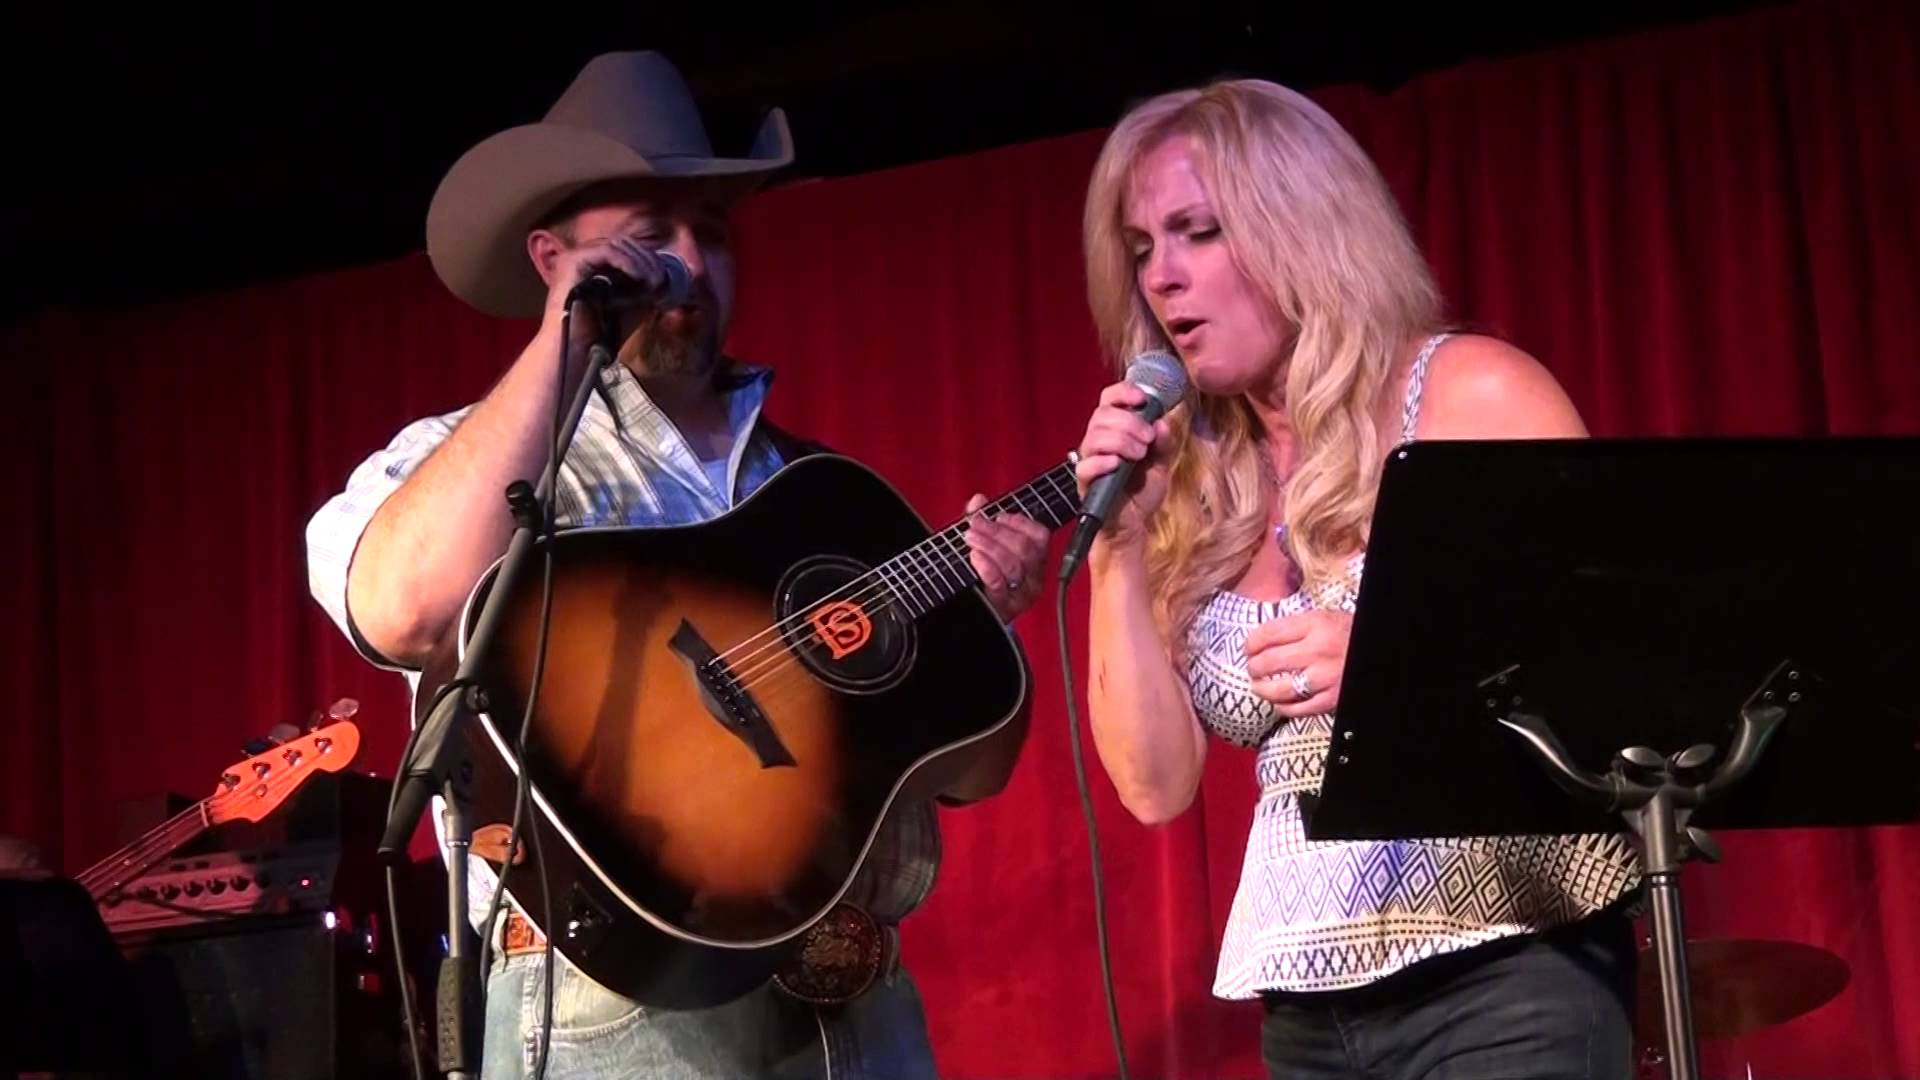 Rhonda Vincent & Daryle Singletary - We're Gonna Hold On - YouTube